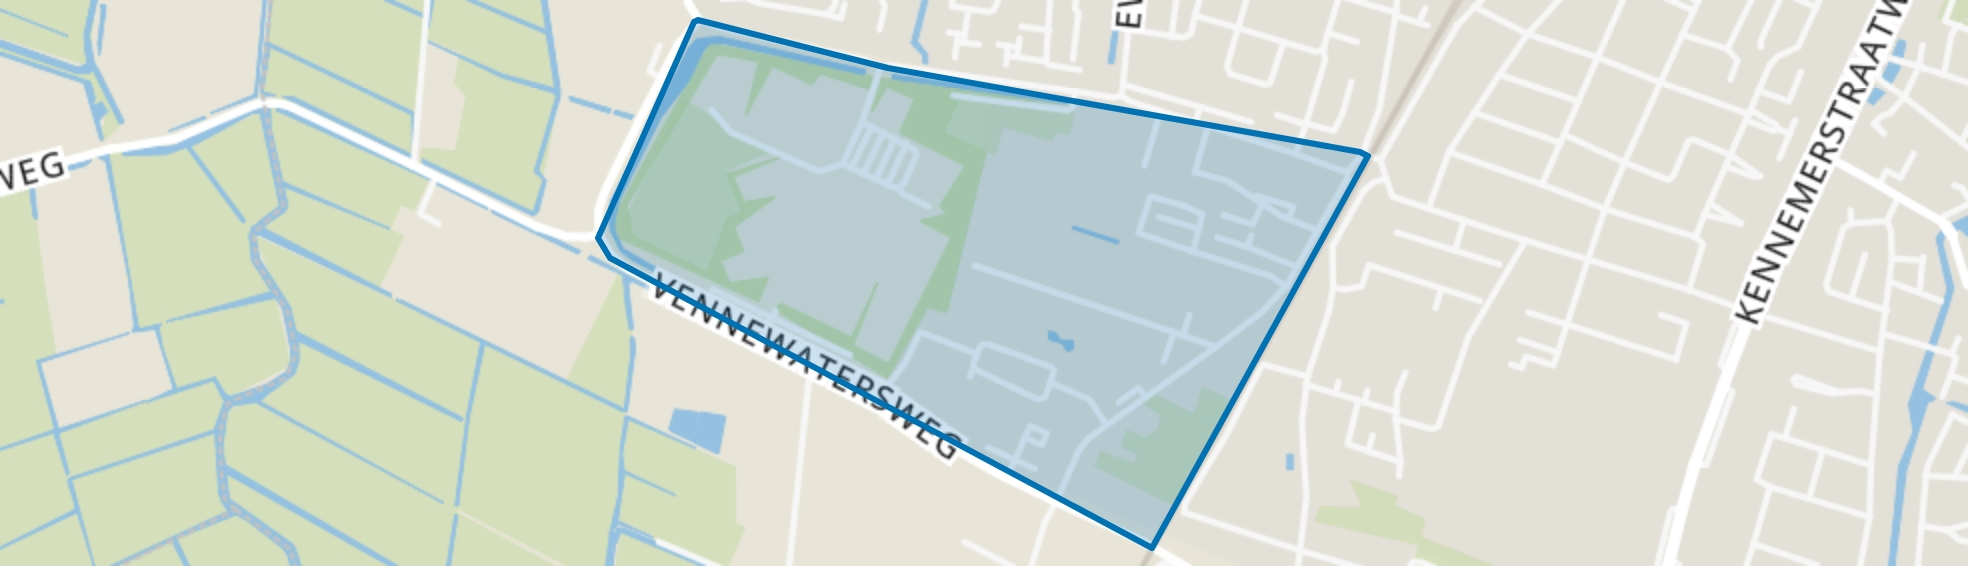 Vennewater, Heiloo map